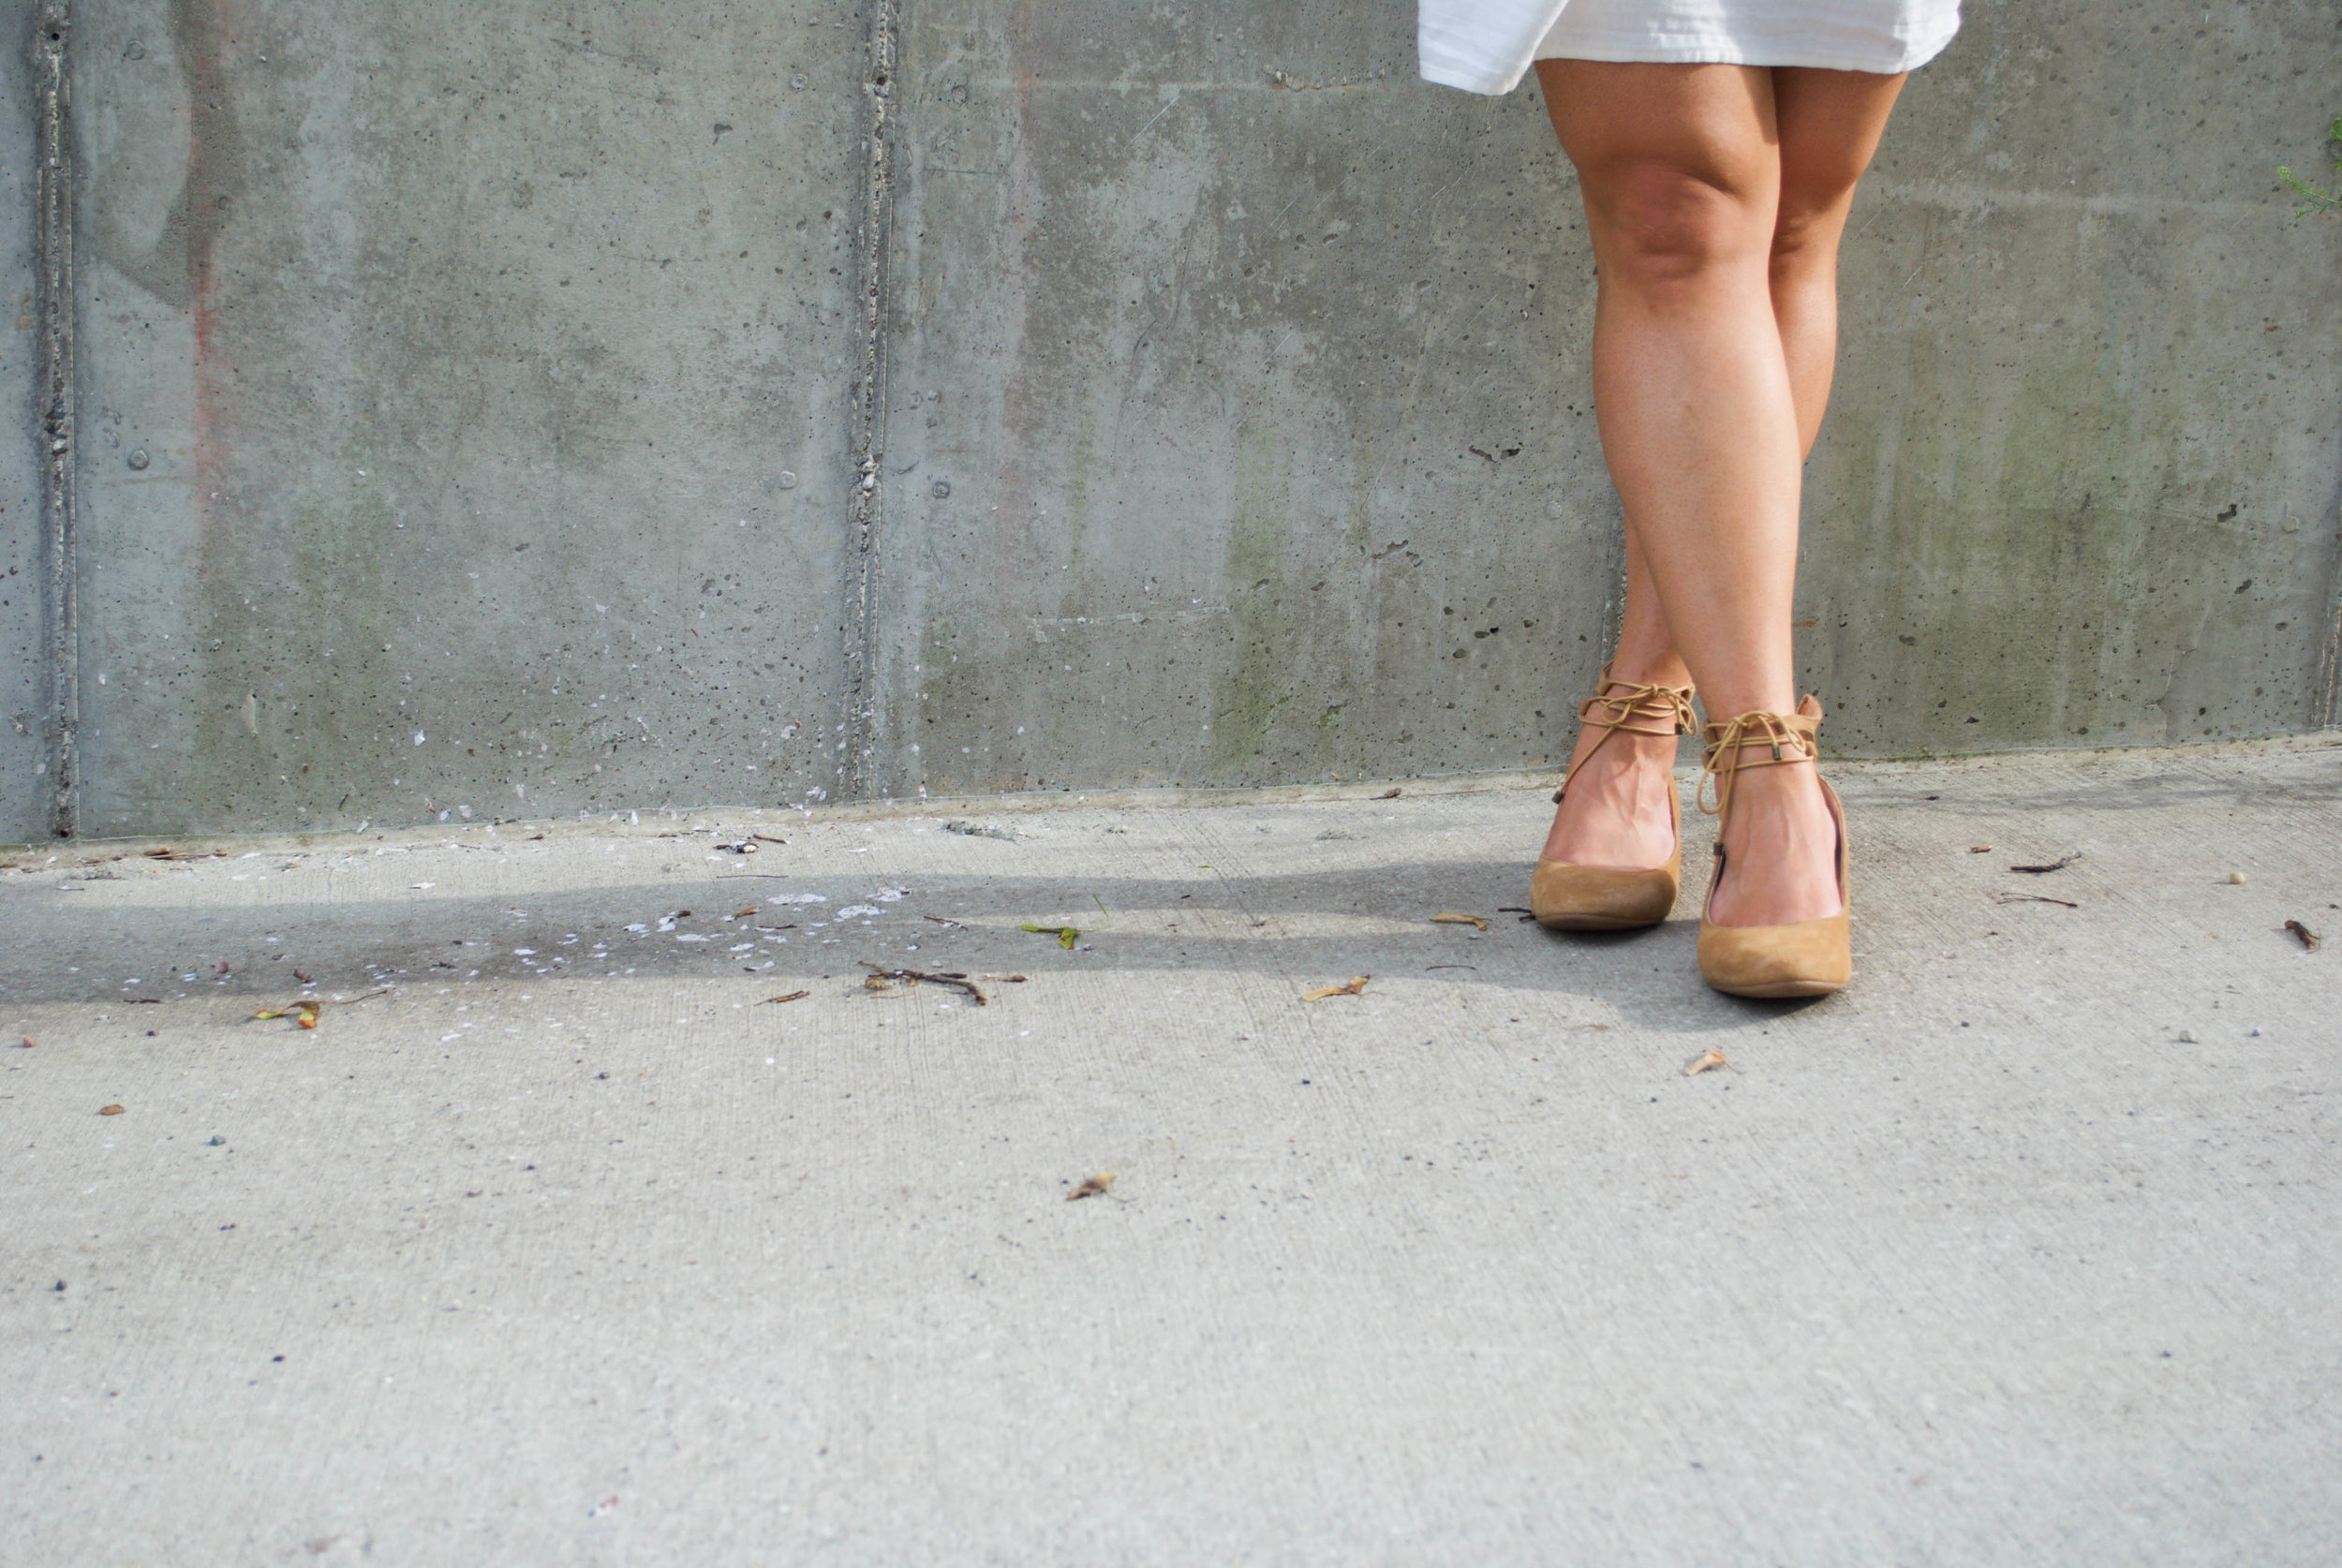 sincerely-ashley-hush puppies-shoessincerely-ashley-hush puppies-shoes